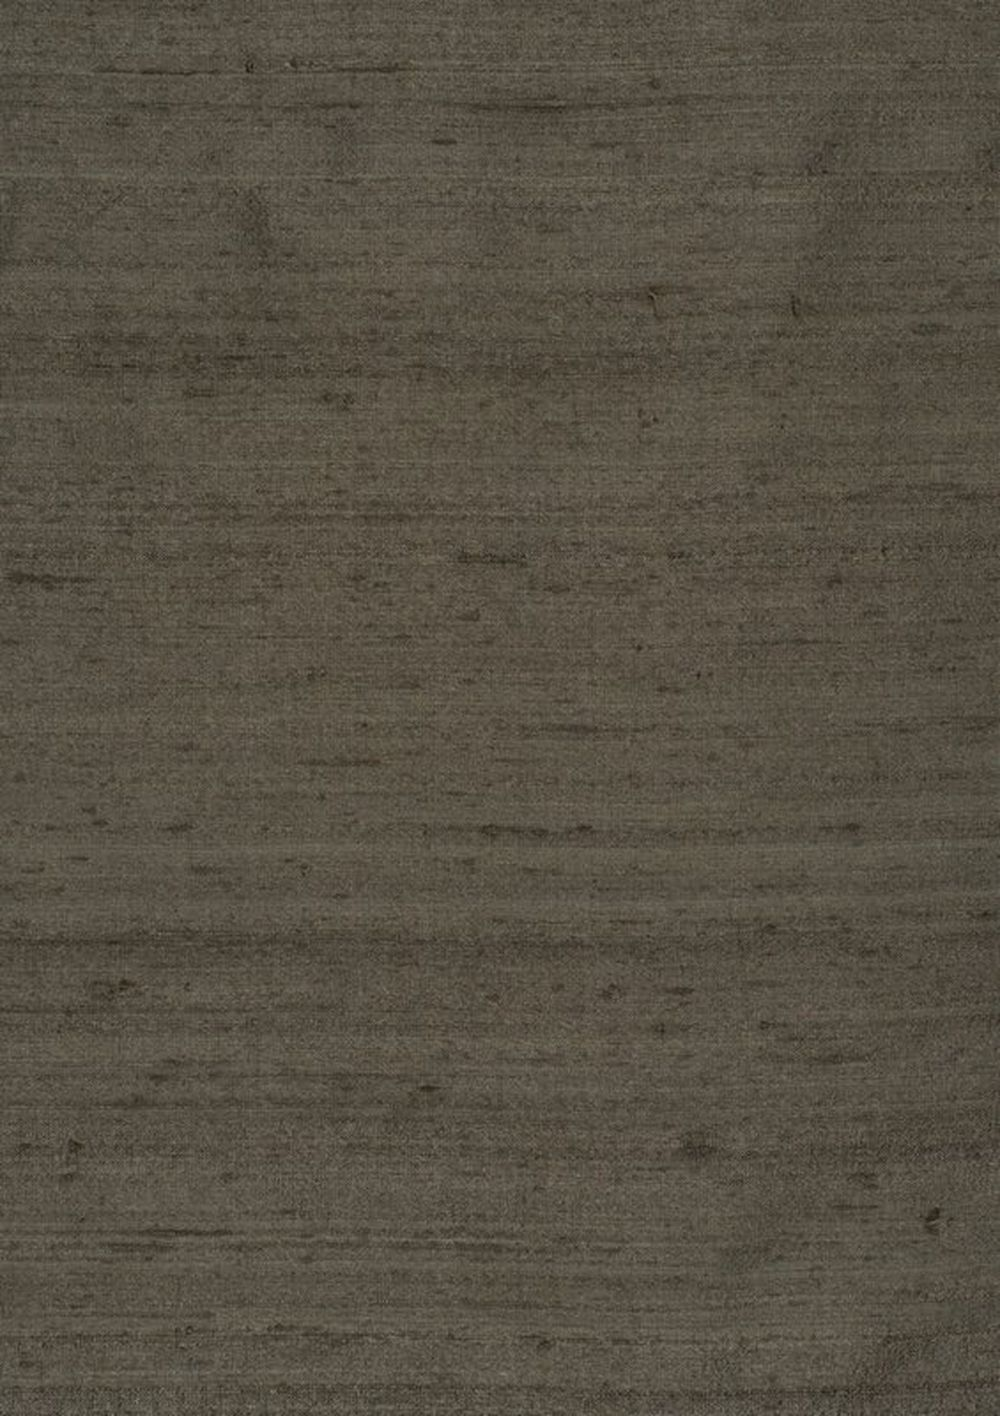 Photo of the fabric Luxury Pewter-139 swatch by James Dunlop. Use for Drapery. Style of Plain